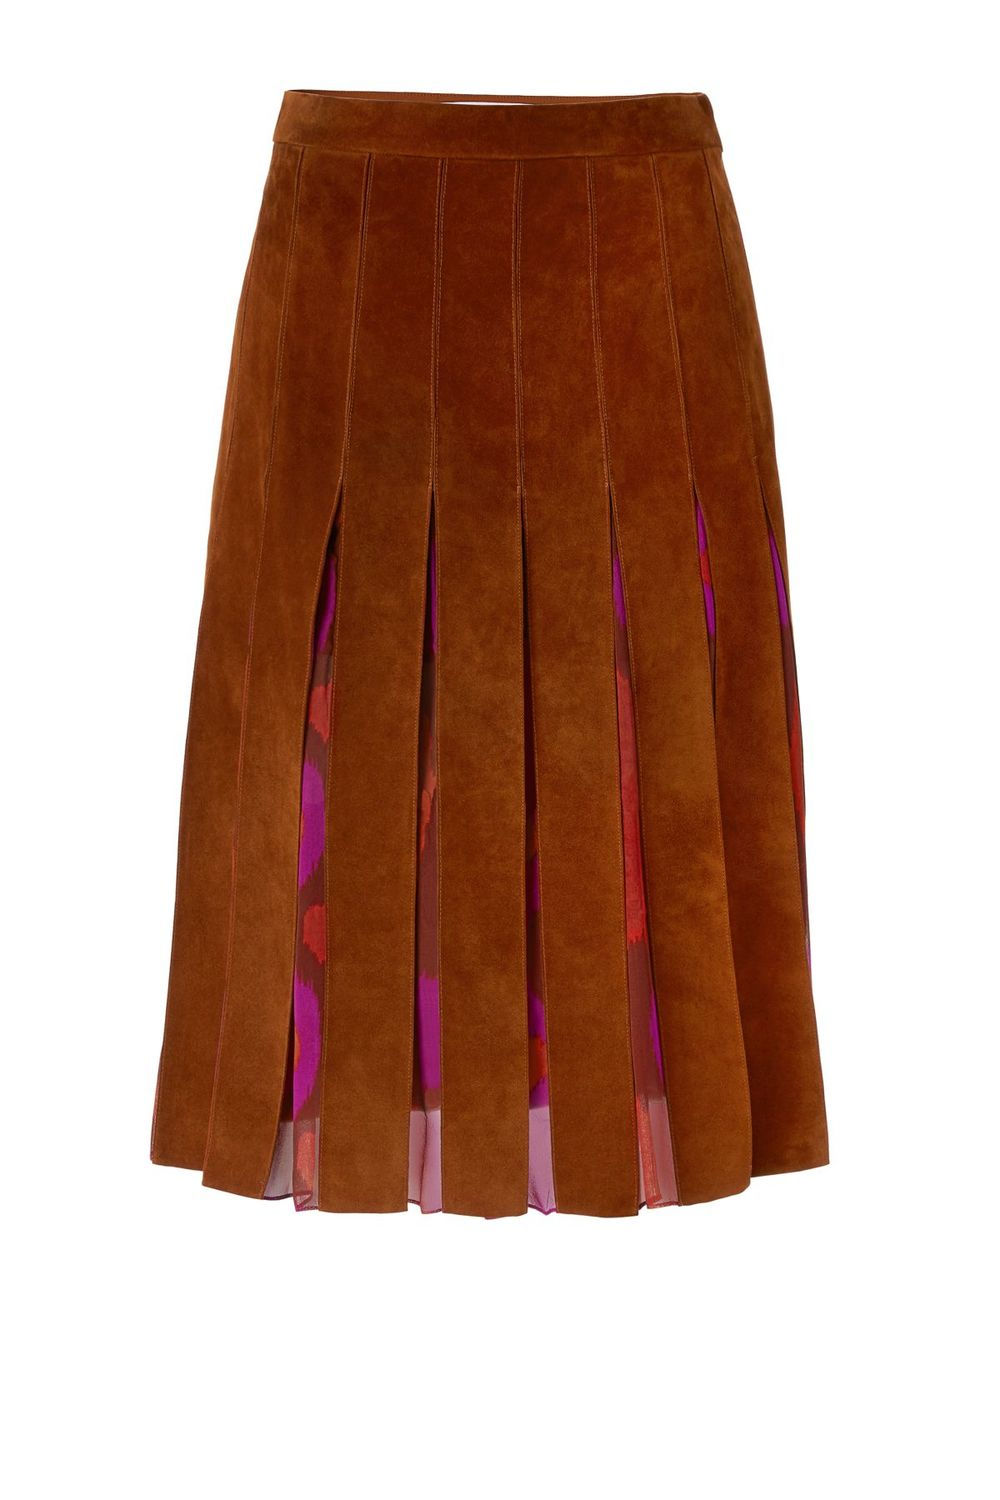 DVF Melita Suede Skirt. DVF (as in Diane von Furstenberg). $798.